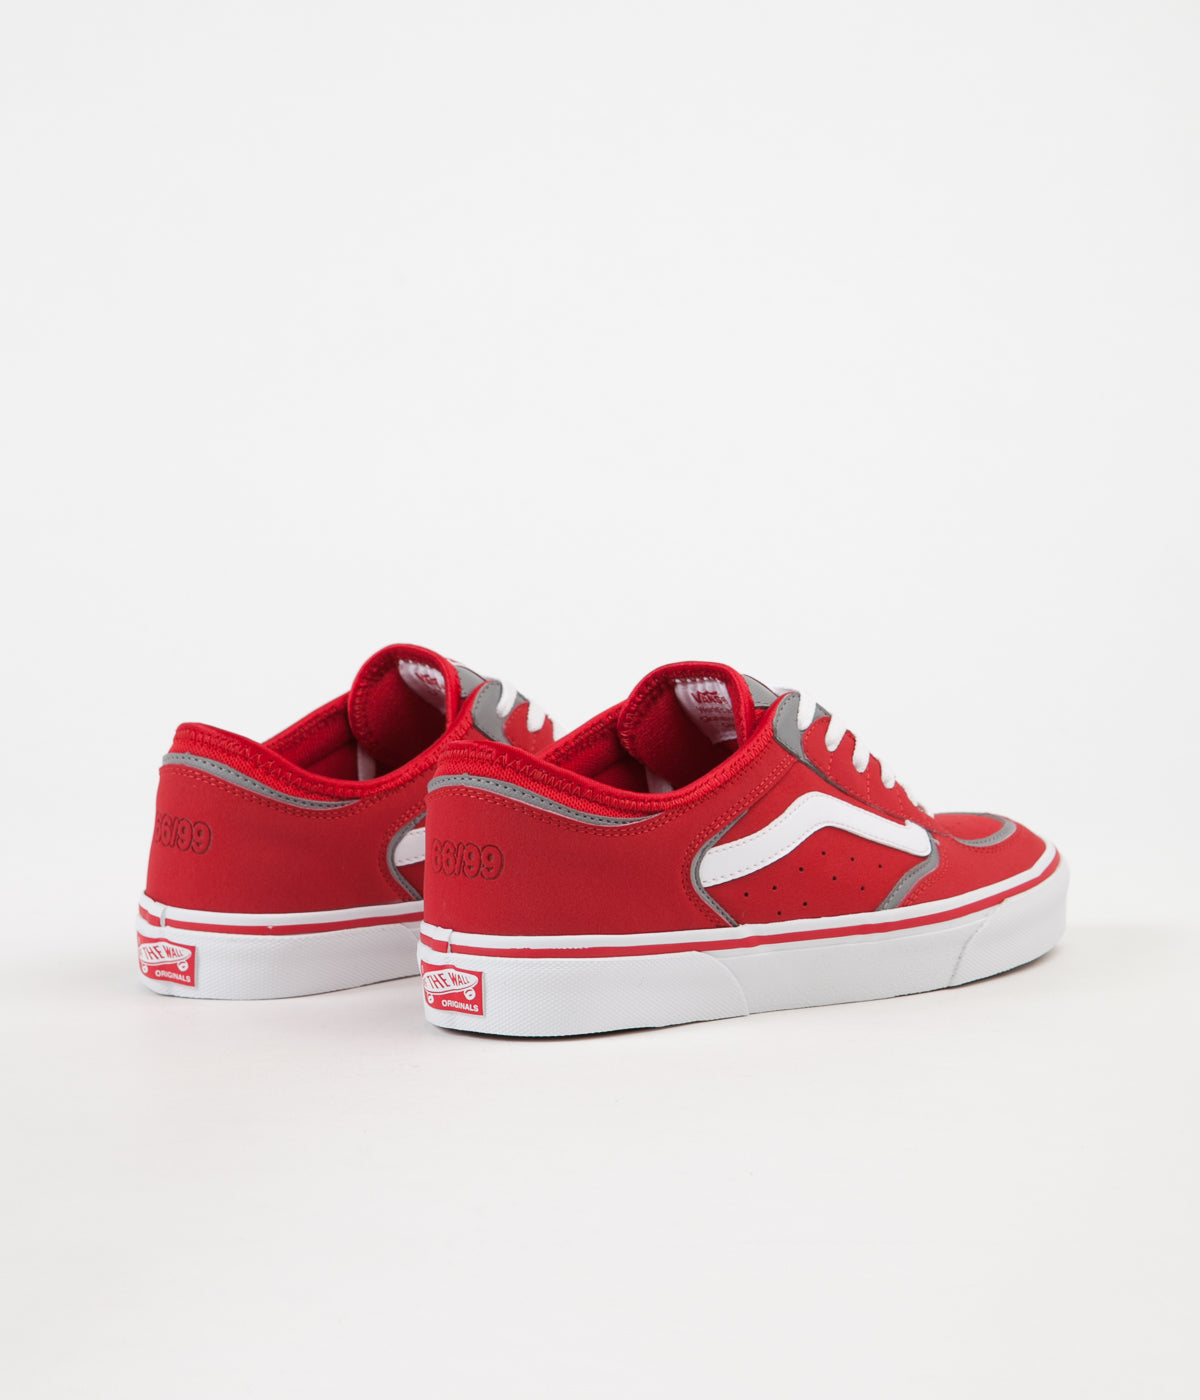 Vans Rowley Classic LX Shoes - Racing Red / White